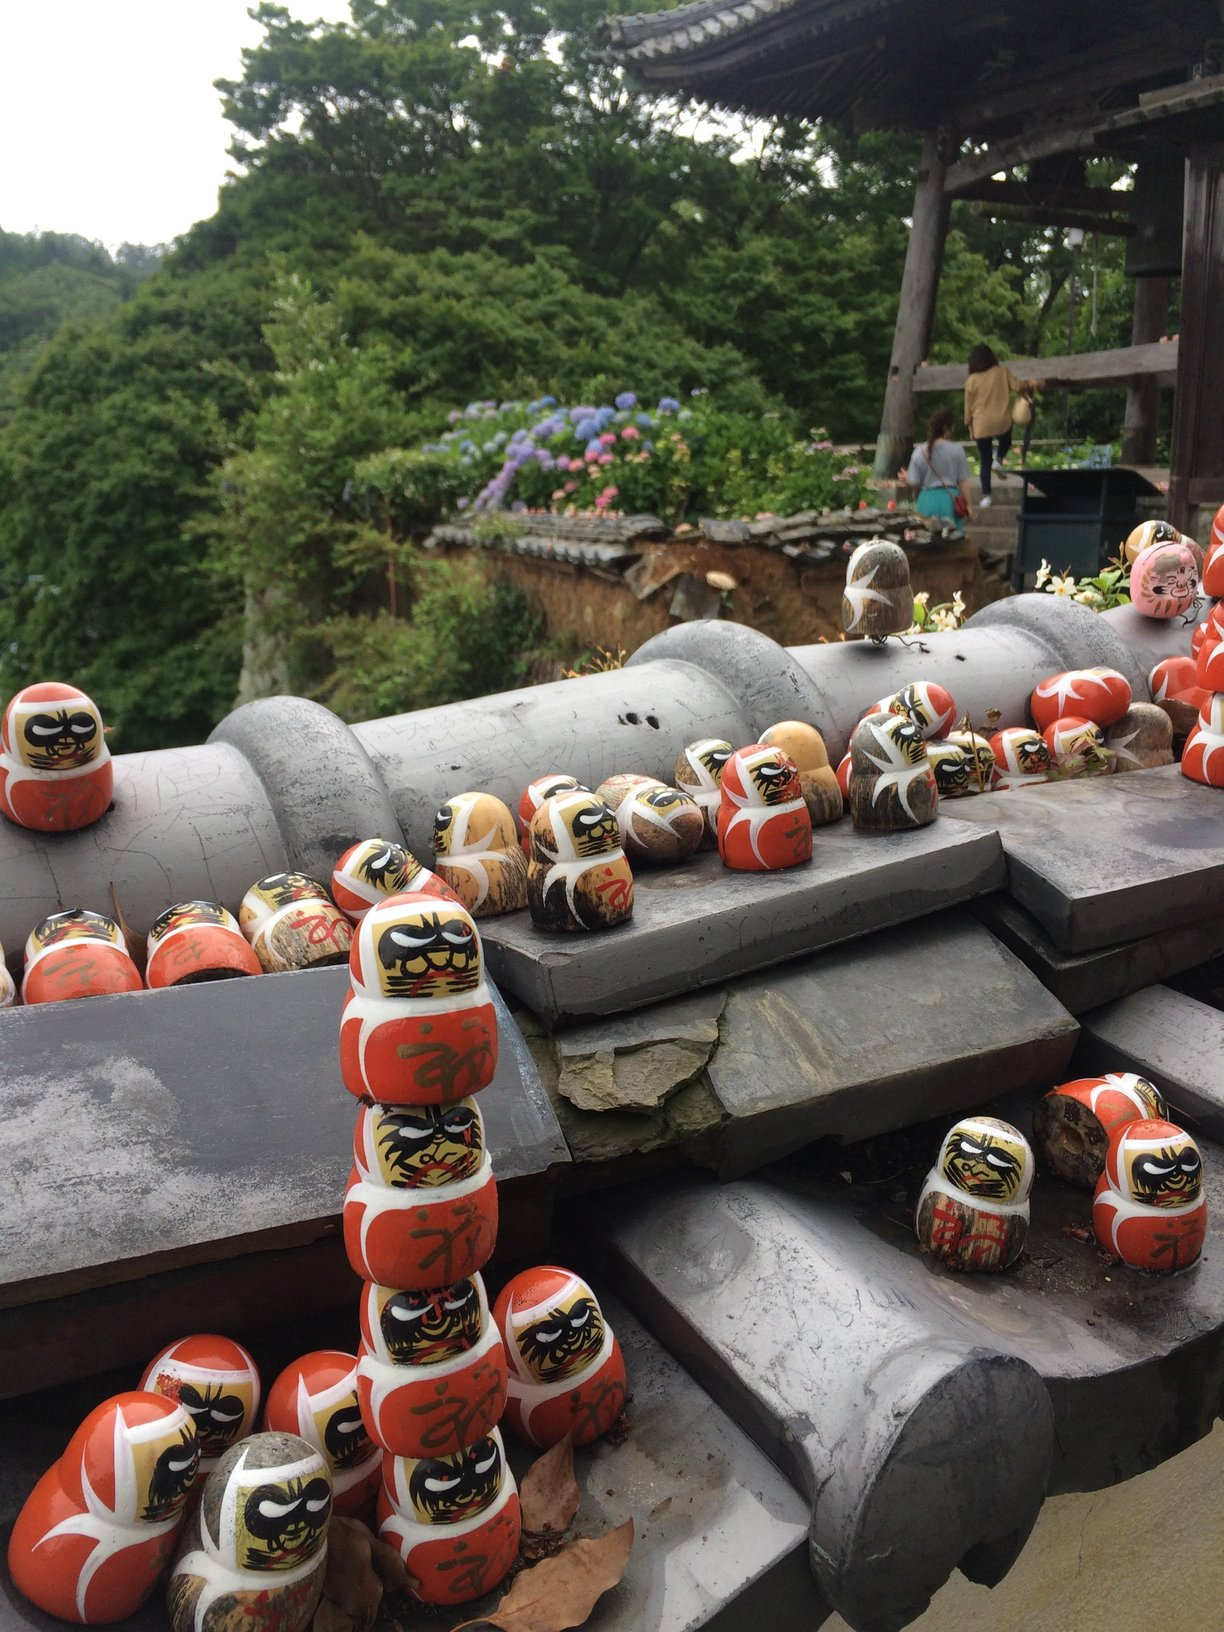 A photograph of a site at the temple filled with daruma dolls